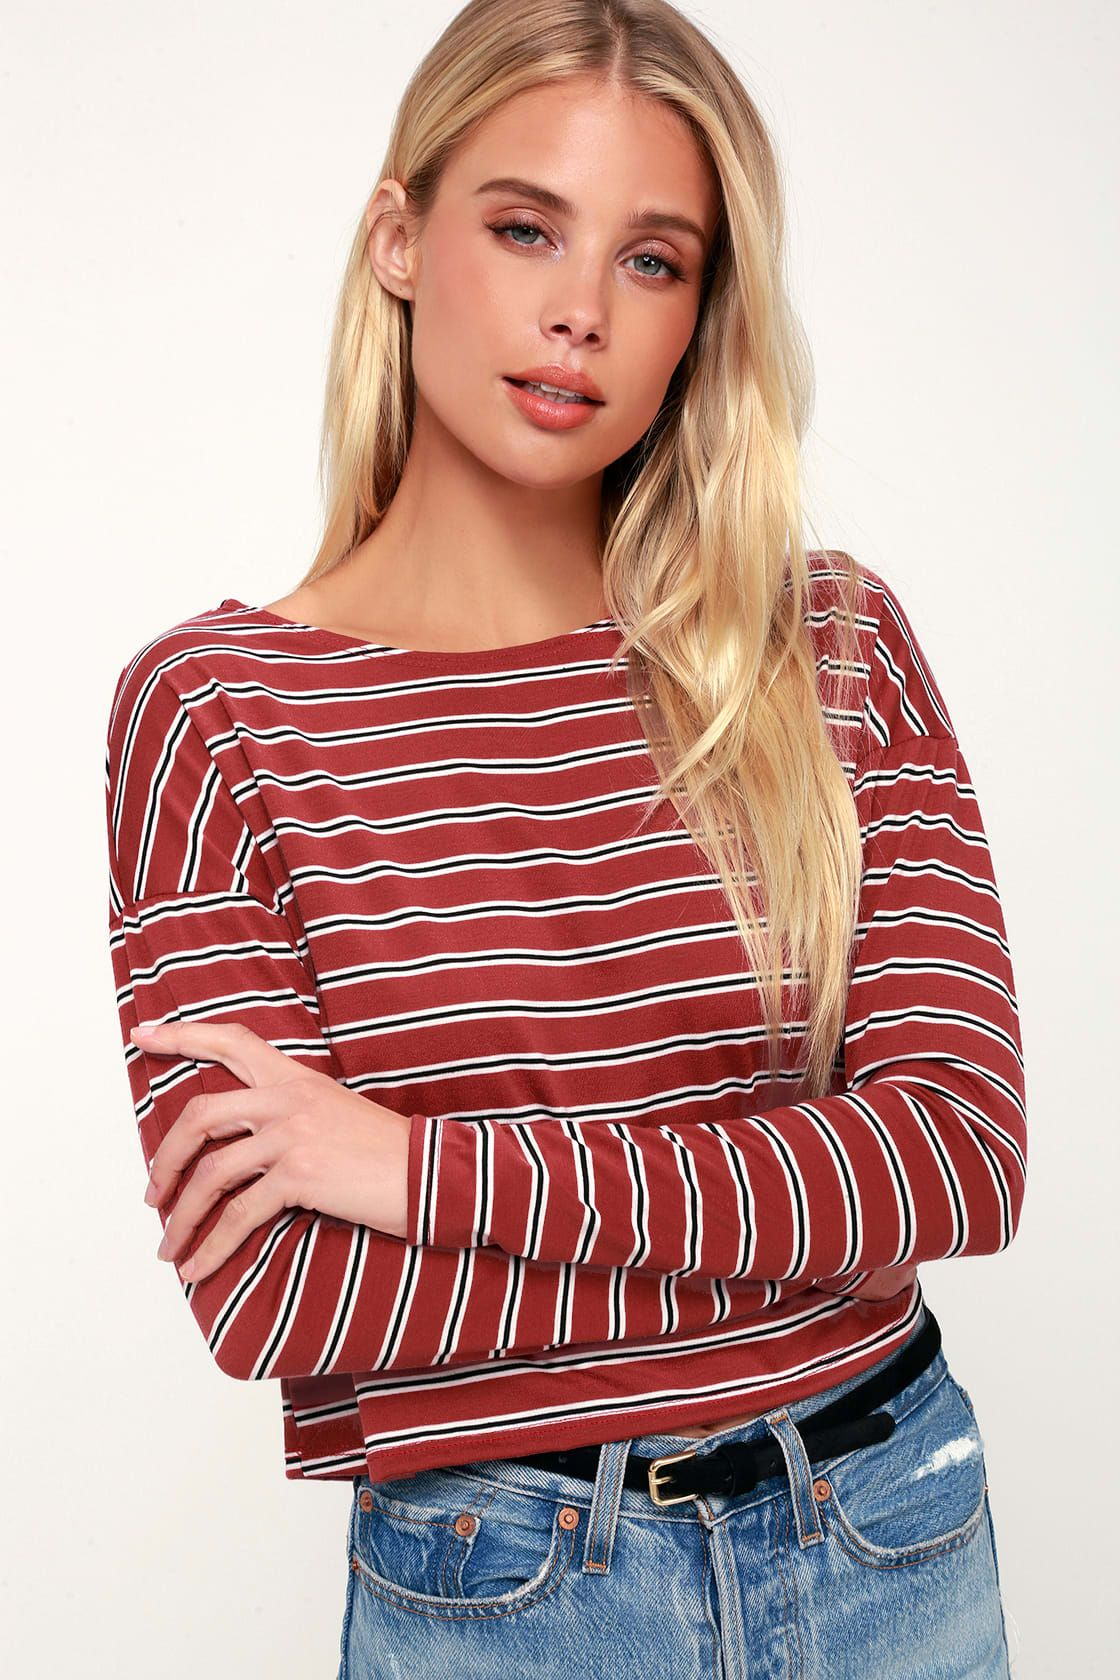 36fc5bbc97d463 City Girl Rust Red Striped Long Sleeve Crop Top in 2019 | w a n t s ...